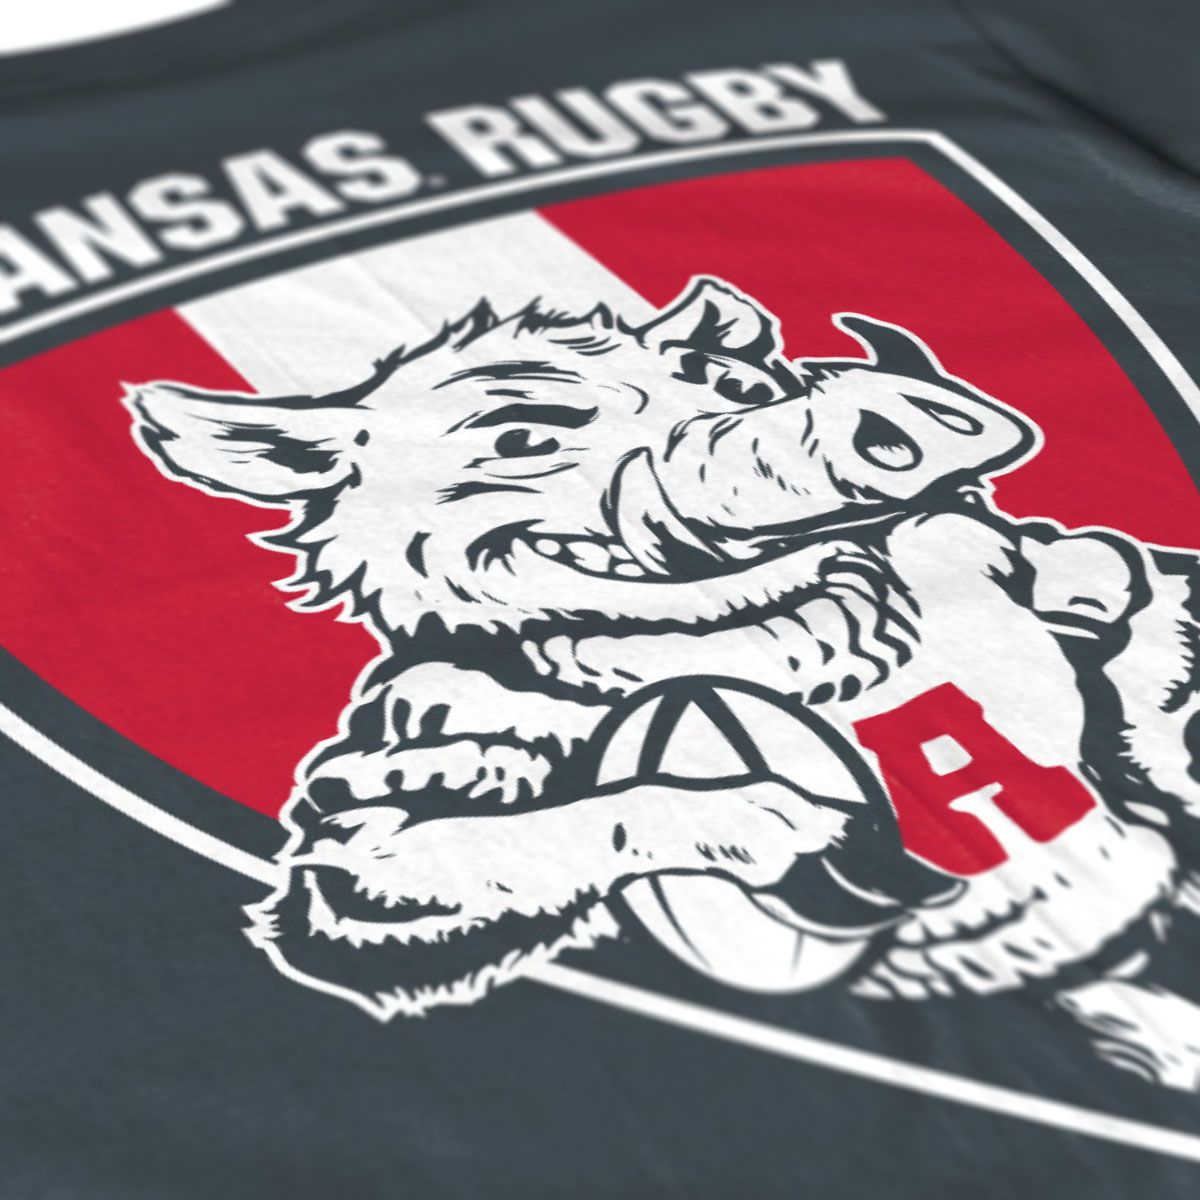 T shirt design jonesboro ar - Arkansas Rugby Rugby Shirts Razorback Rugby Check Out B Unlimited Com